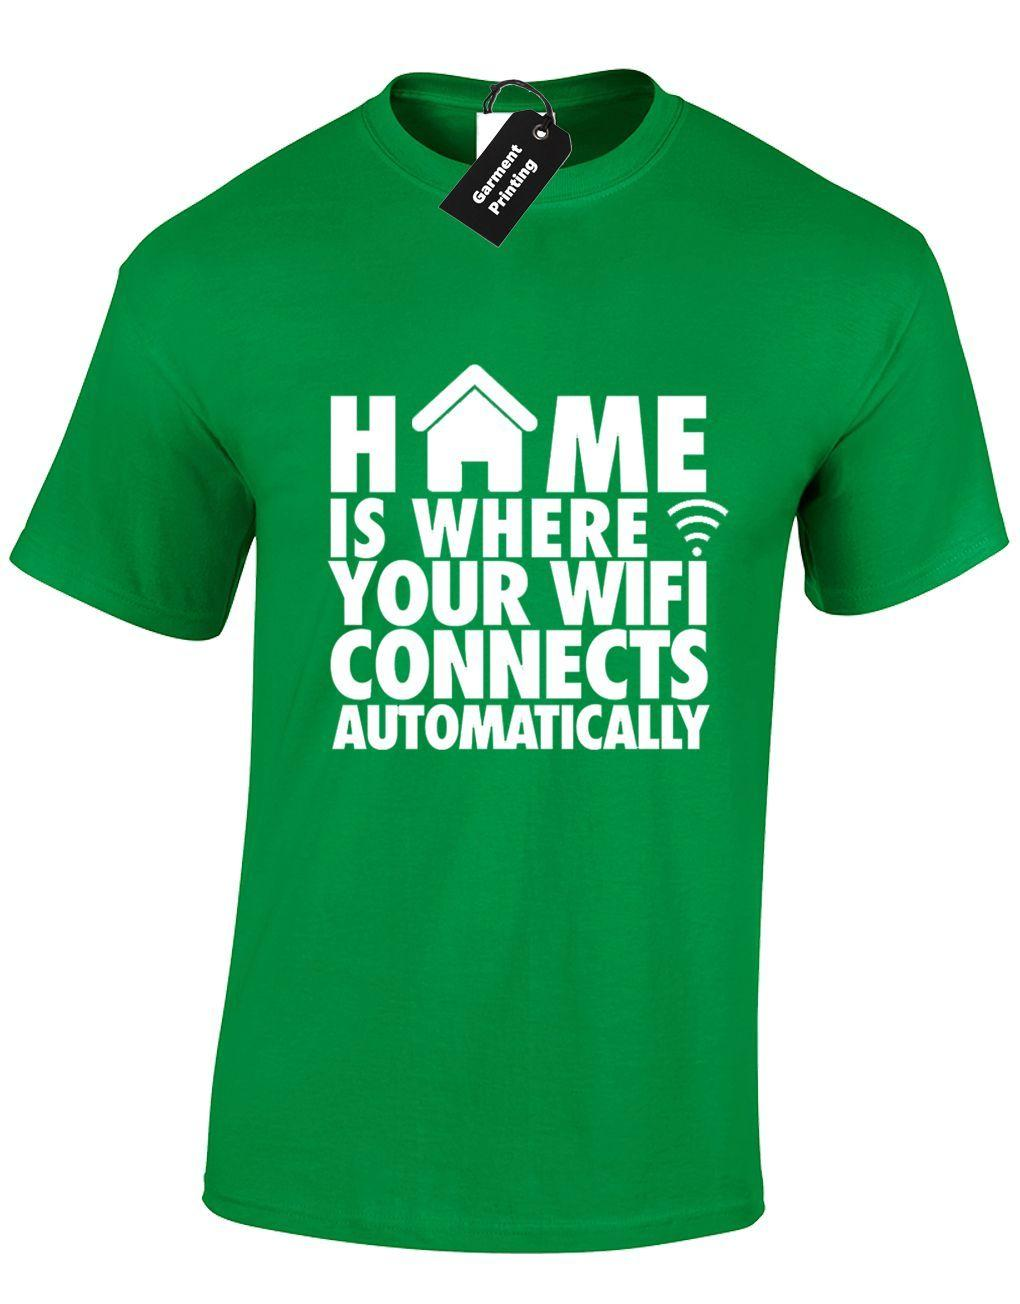 801c4eb6a HOME IS WHERE WIFI MENS T SHIRT FUNNY GAMER NEW QUALITY DESIGN GAMING XBOX  PS4Funny Unisex Casual Tshirt Top Funny T Shirt Awesome T Shirts From ...